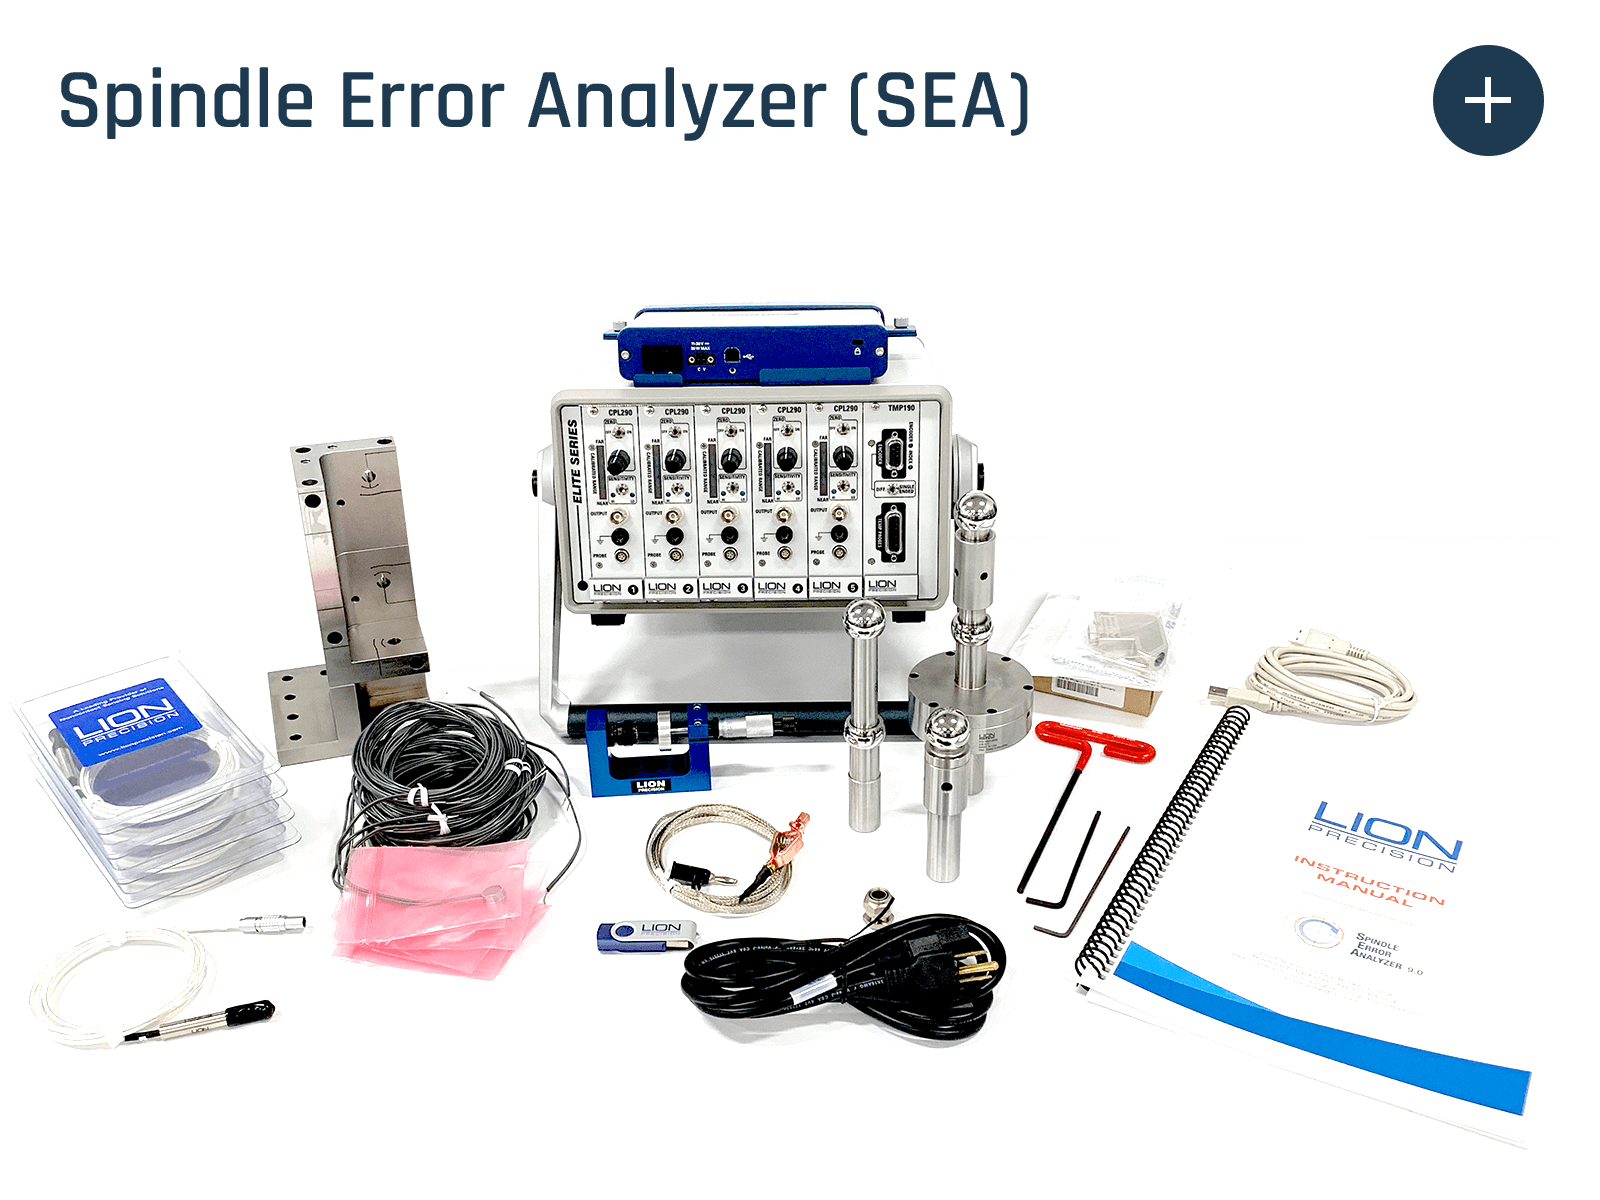 SpindelErrorAnalyzer